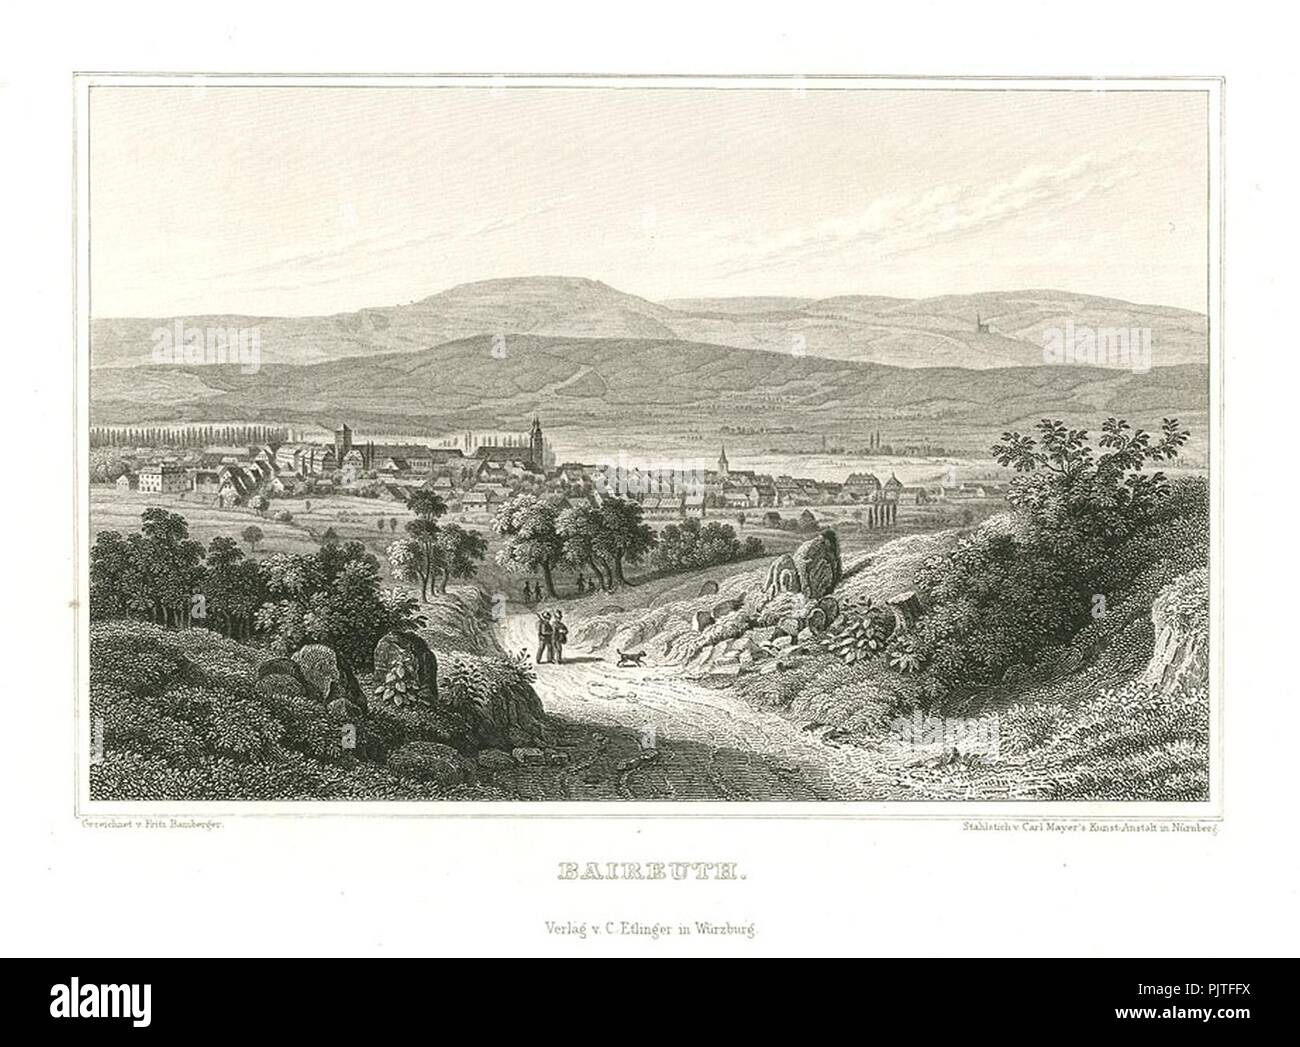 Bayreuth Stahlstich 1847. - Stock Image